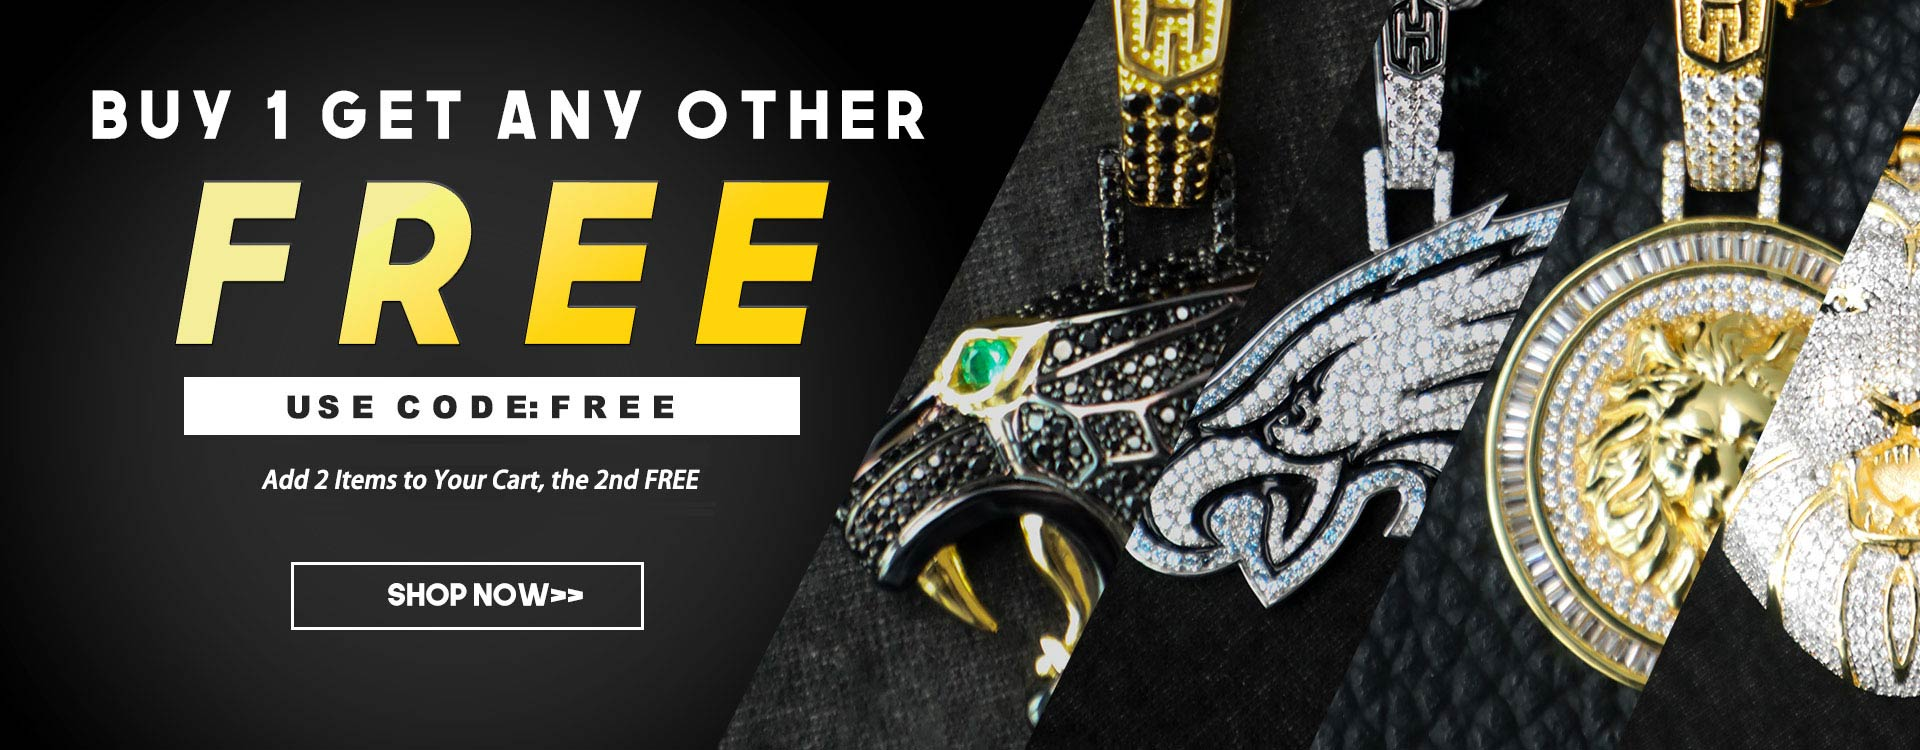 BUY ONE GET ANY OTHER FREE